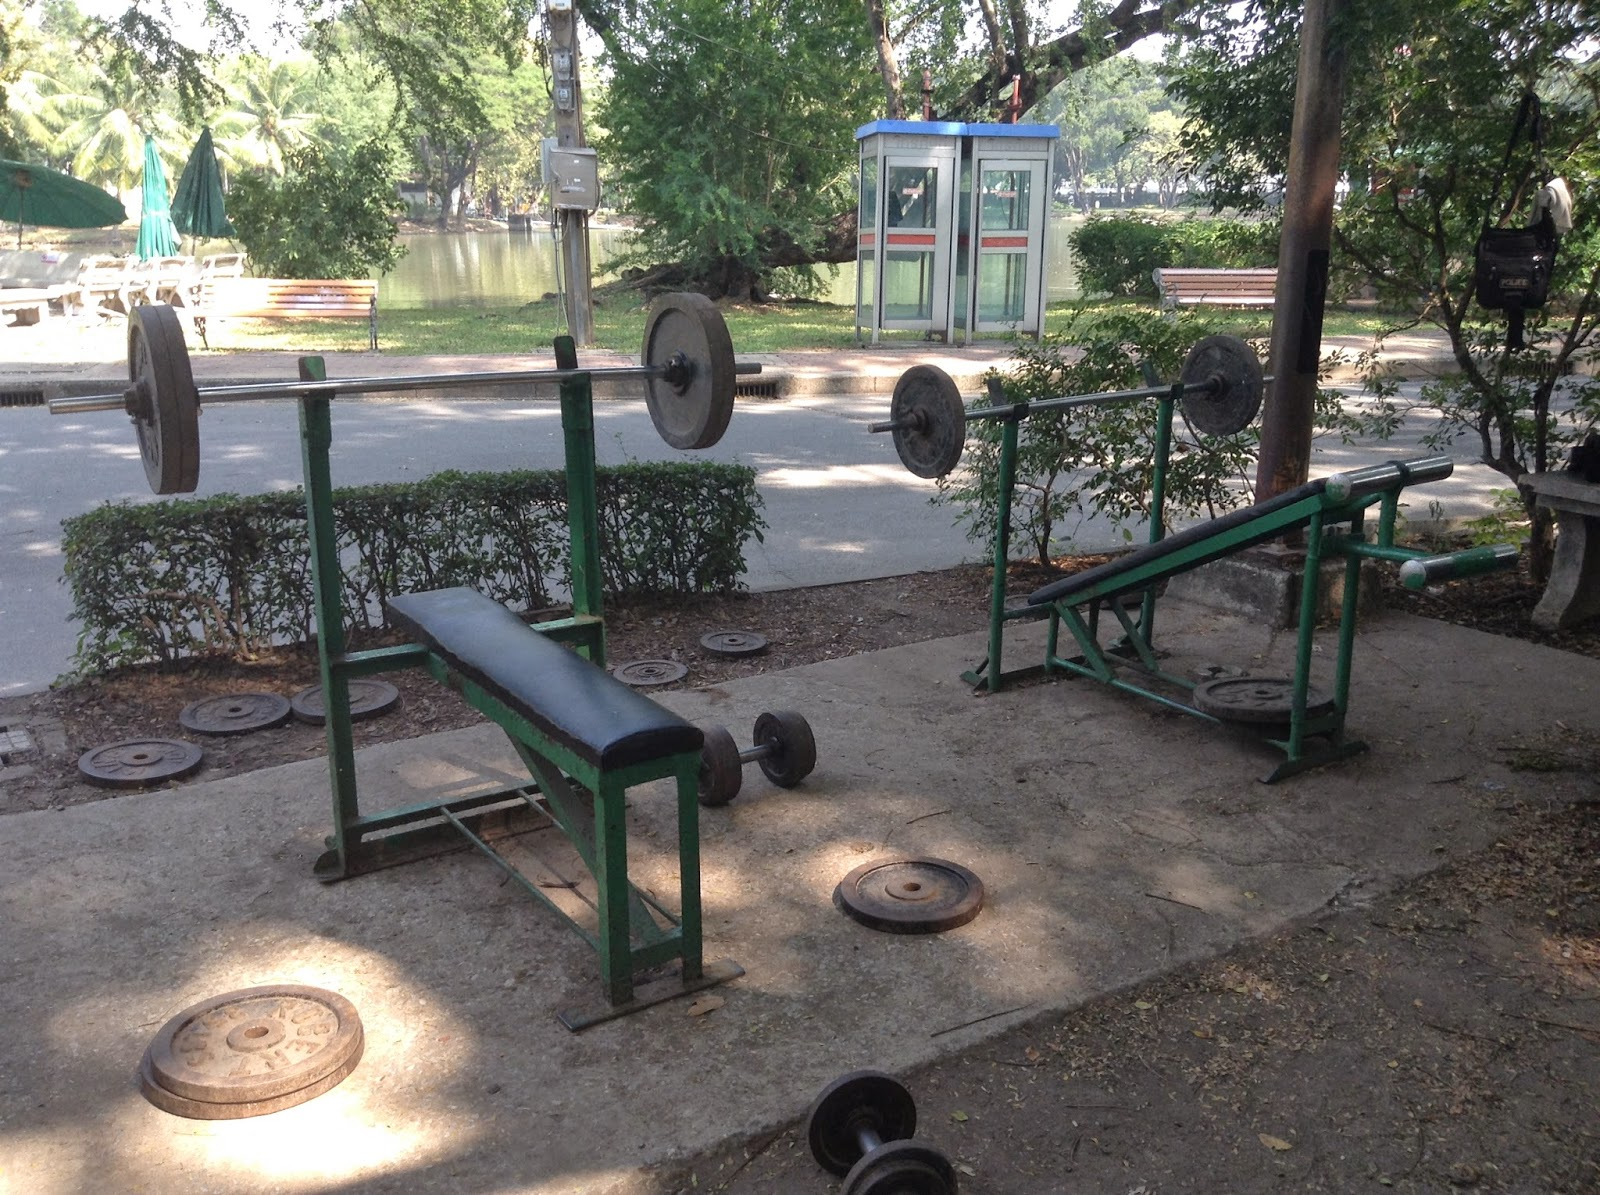 best outdoor gyms in bangkok thailand arnel banawa